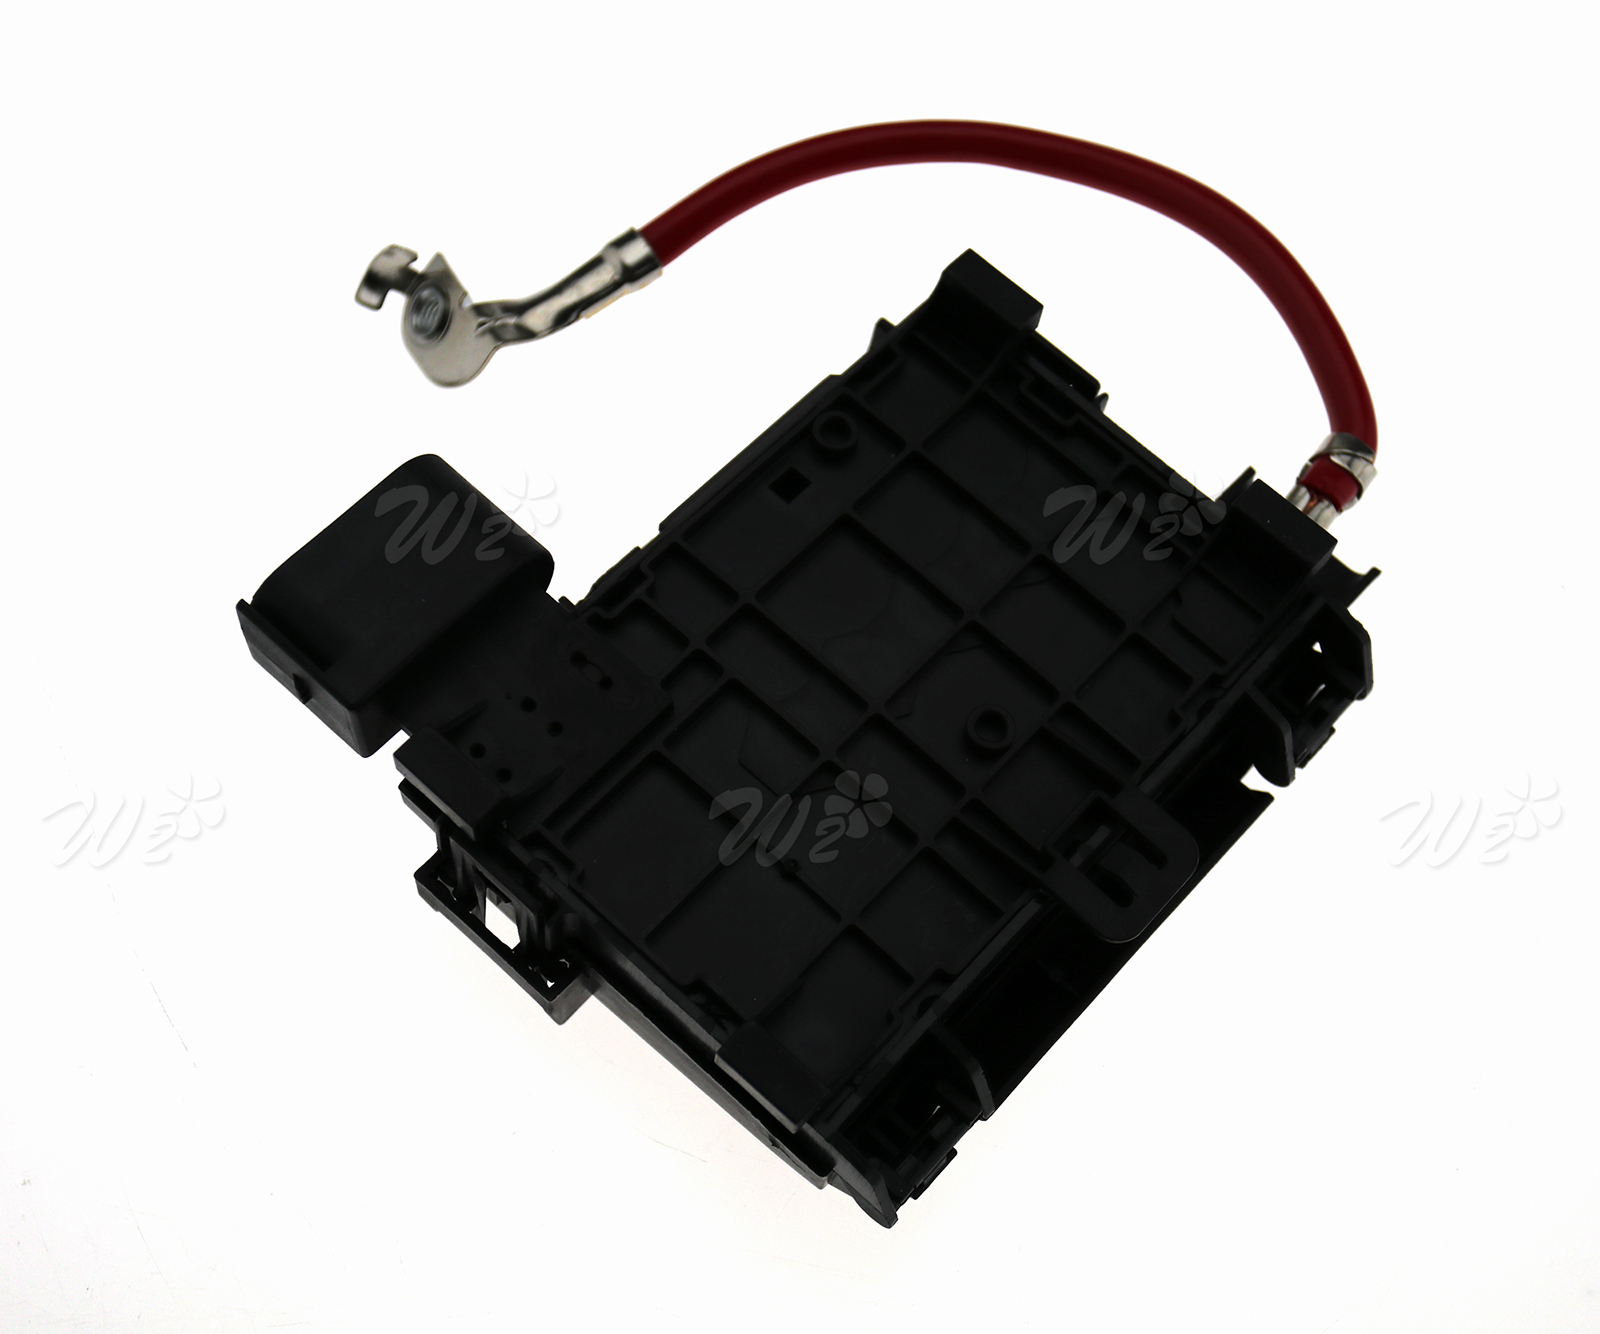 hight resolution of fuse box 3 pin battery terminal for volkswagen vw golf bora jetta replacement